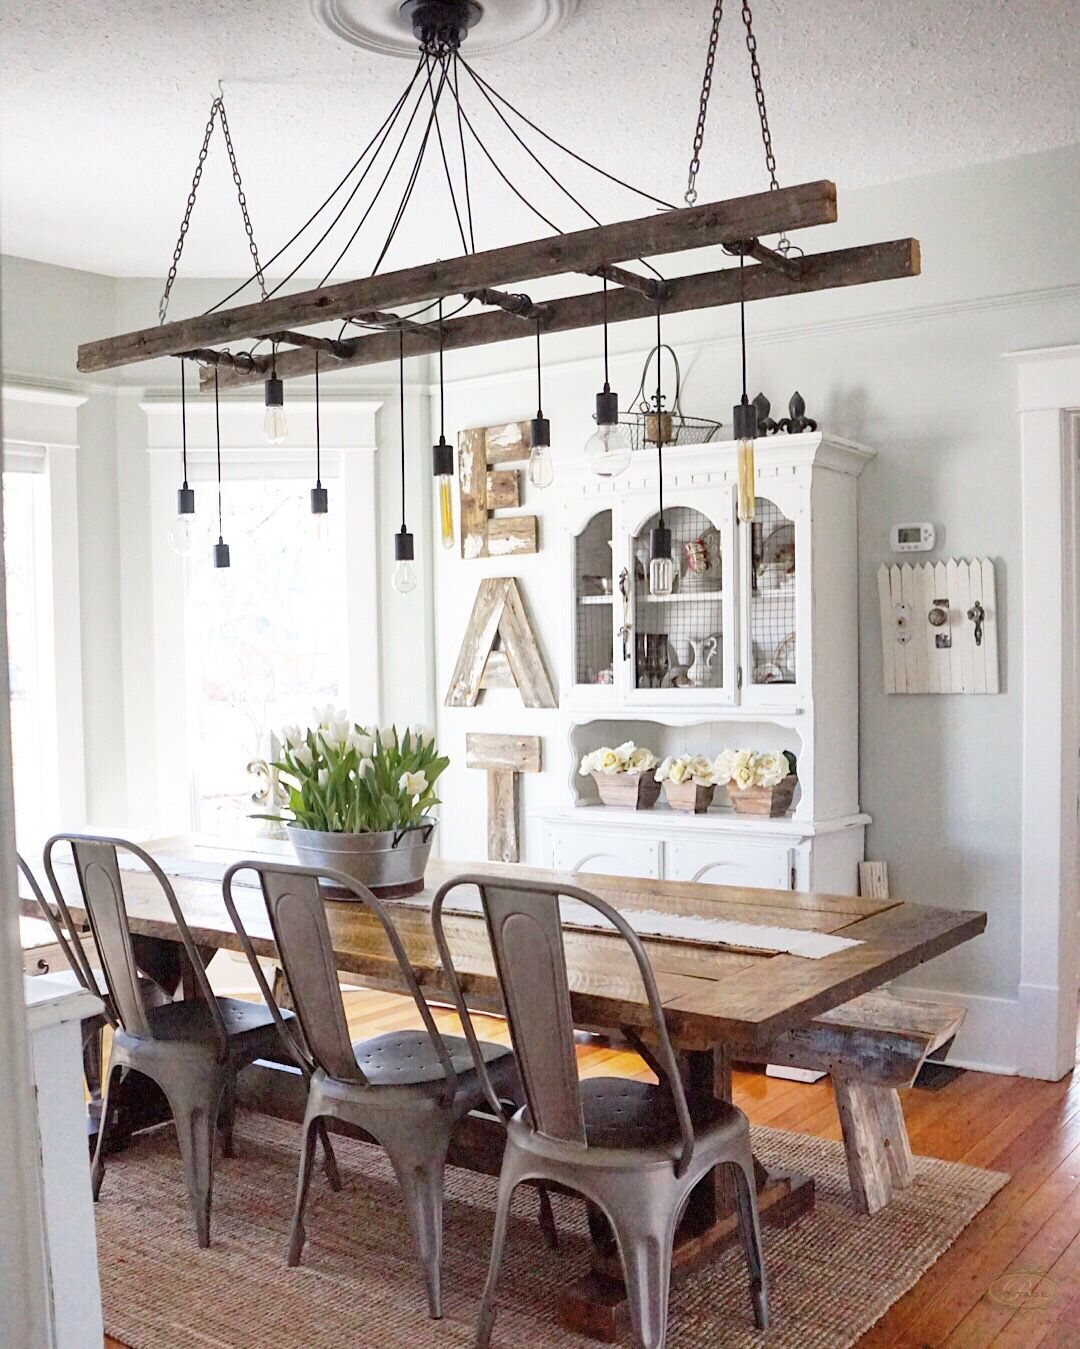 Vintage Dining Rooms Take A Look At This Dazzling Dining Room Lighting With A Rustic Dining Room Lighting Modern Farmhouse Dining Modern Farmhouse Dining Room